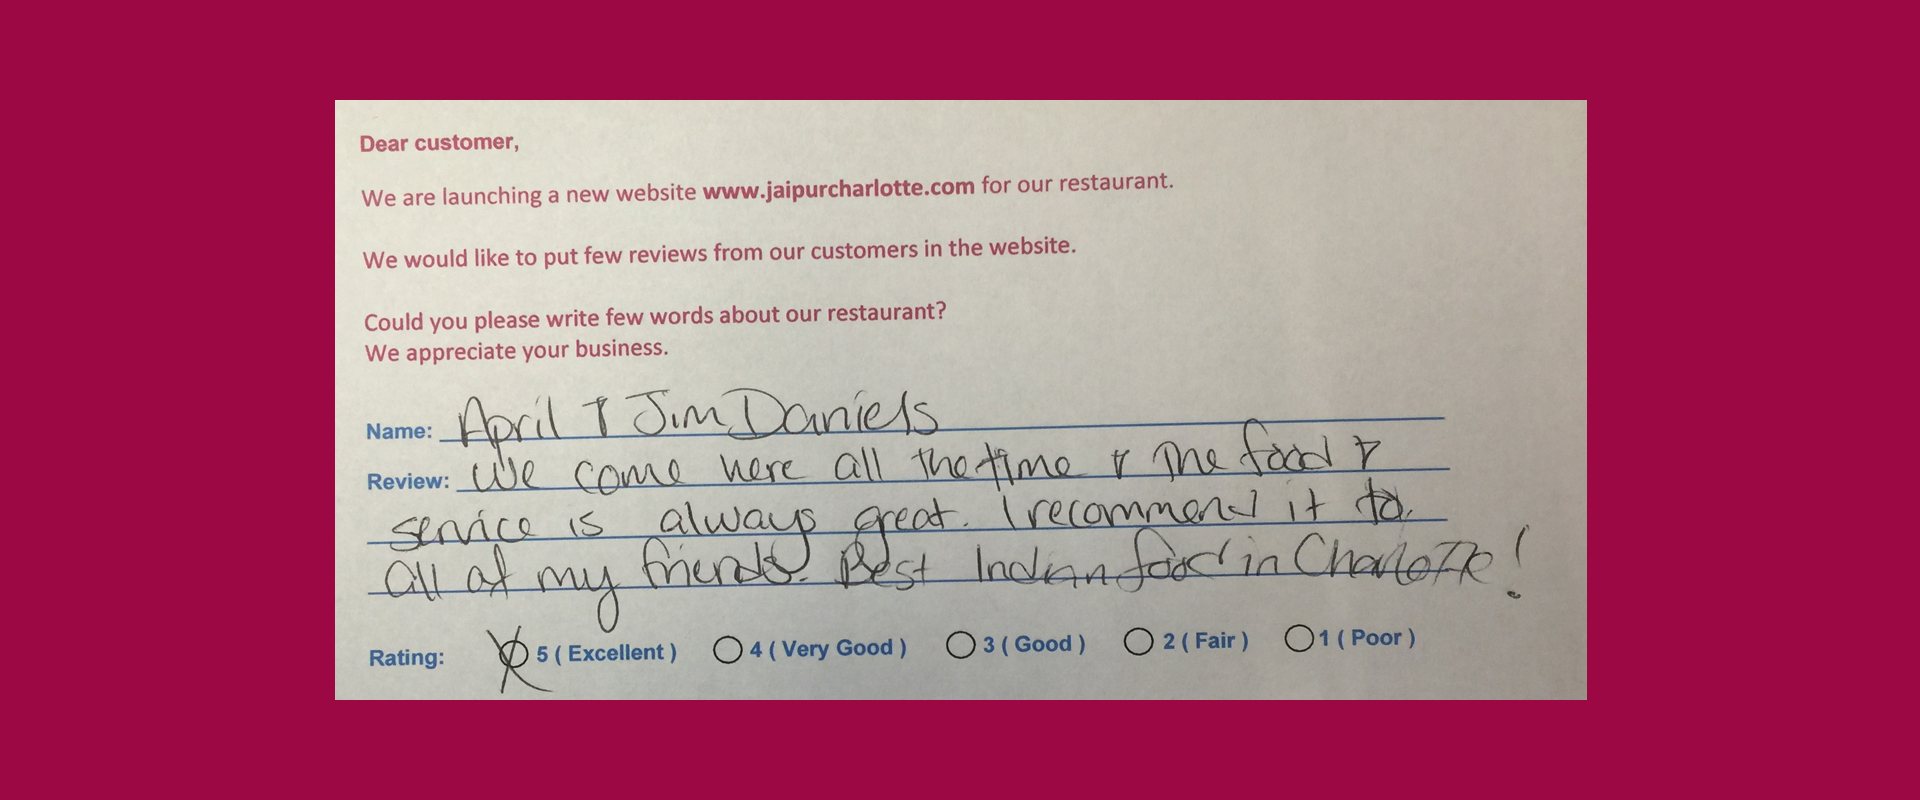 Jaipur Indian Restaurant Customer Review by April and Jim Daniels - Rating 5 out of 5